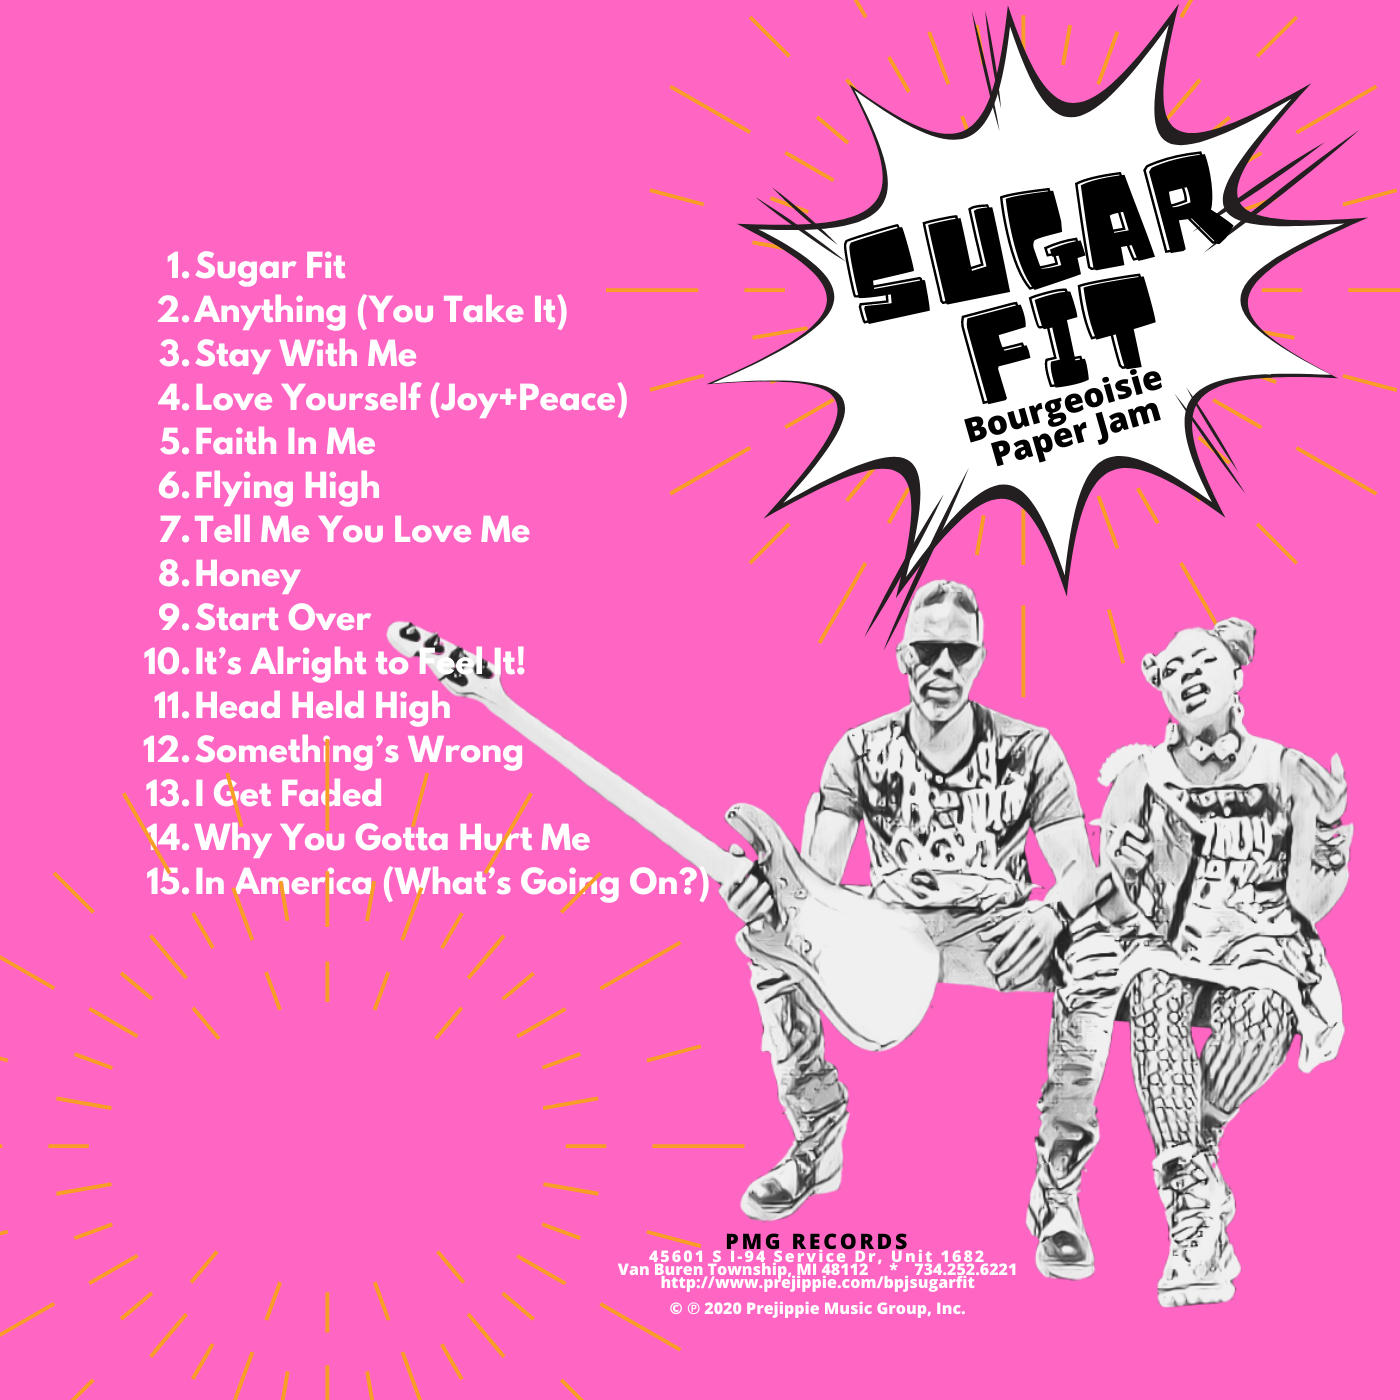 """Sugar Fit"" by Bourgeoisie Paper Jam"